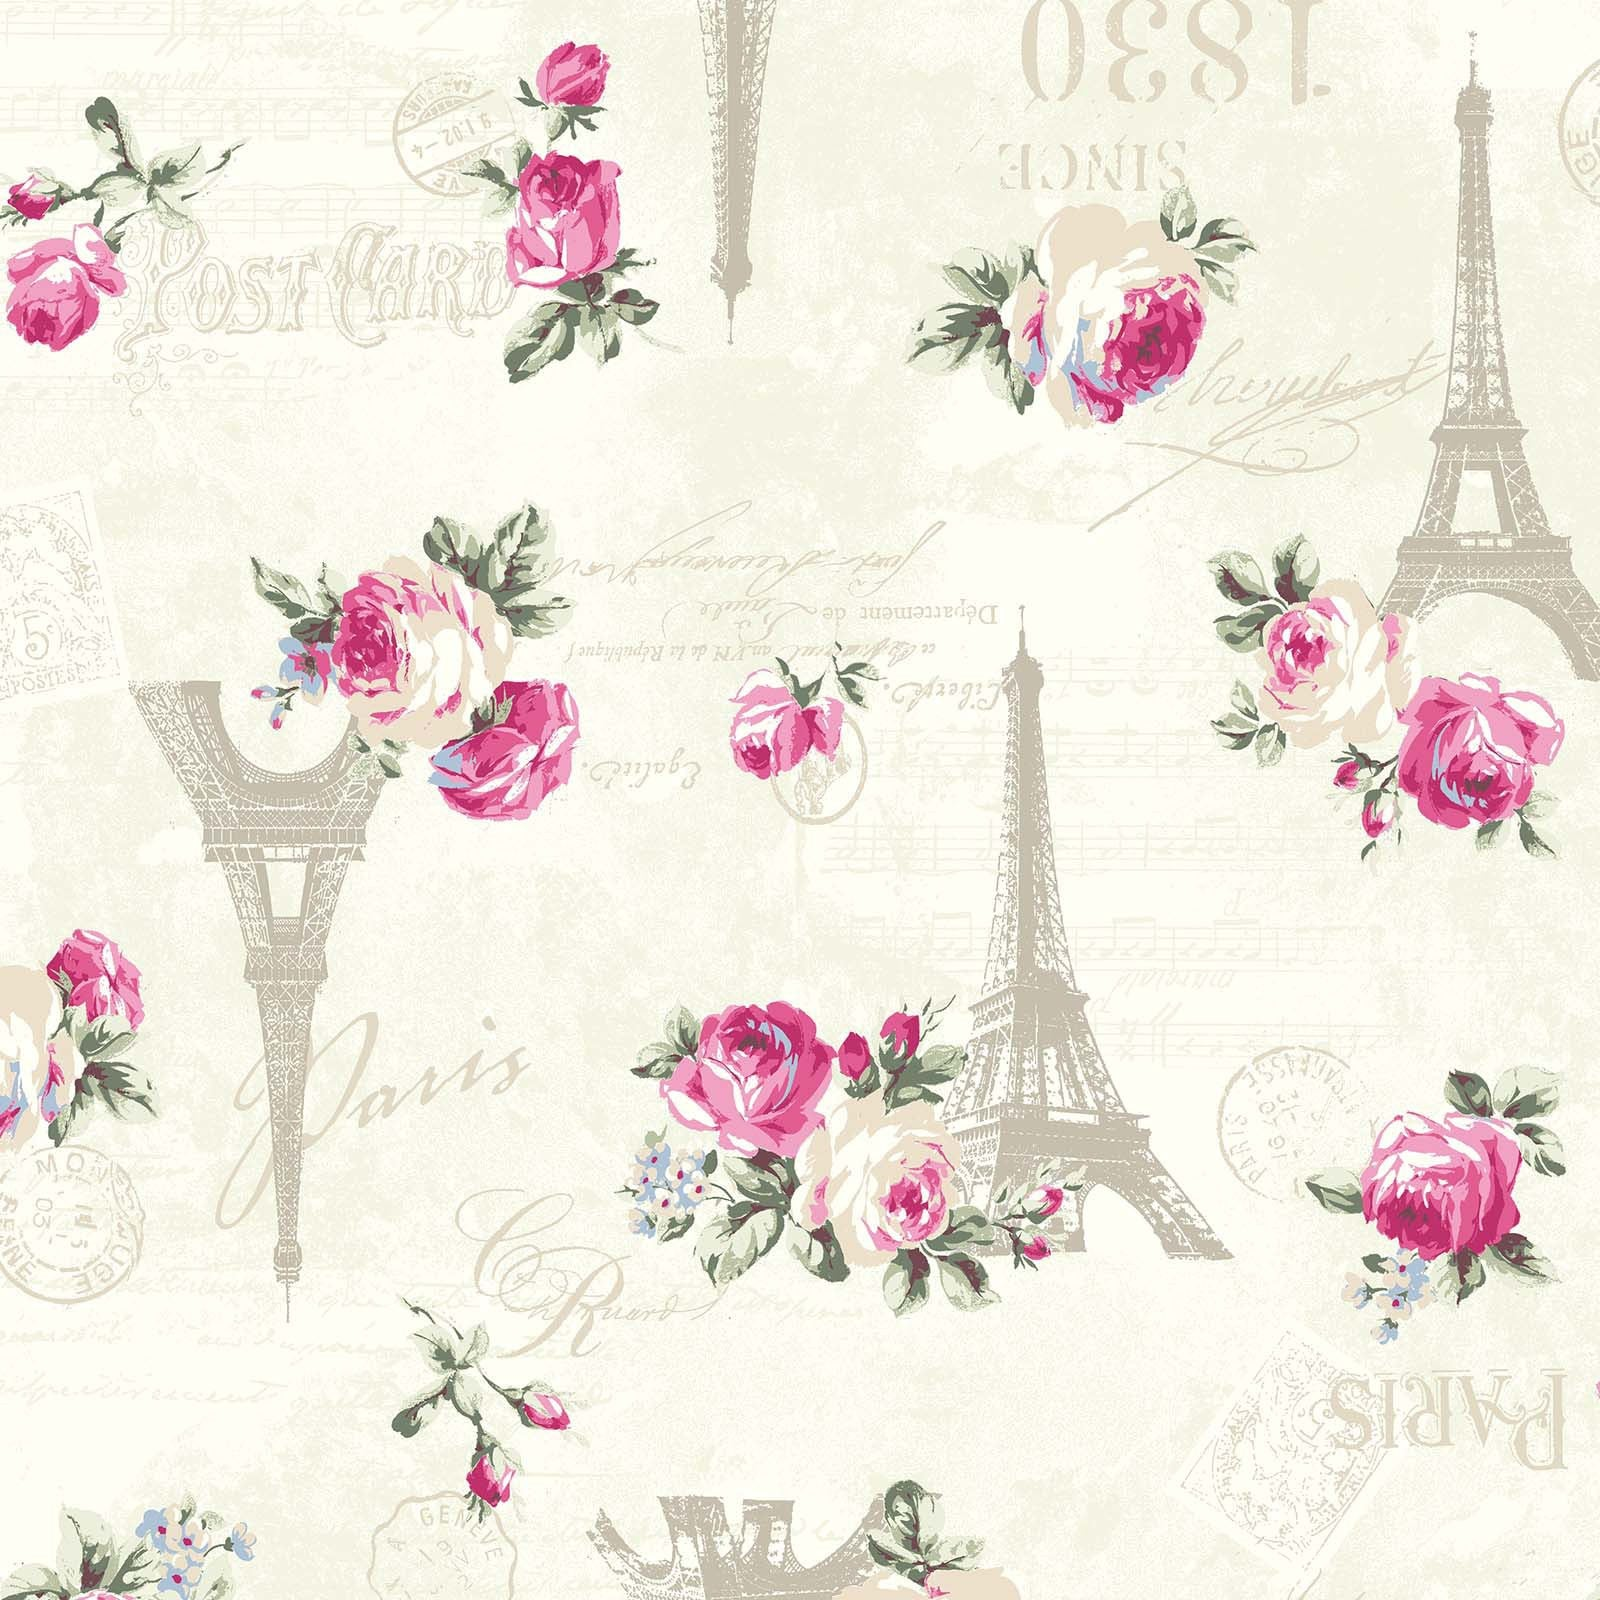 Ruru Rose Bouquet in Paris cotton fabric by Quilt Gate Ru2370-12A Eiffel Tower Roses on Cream